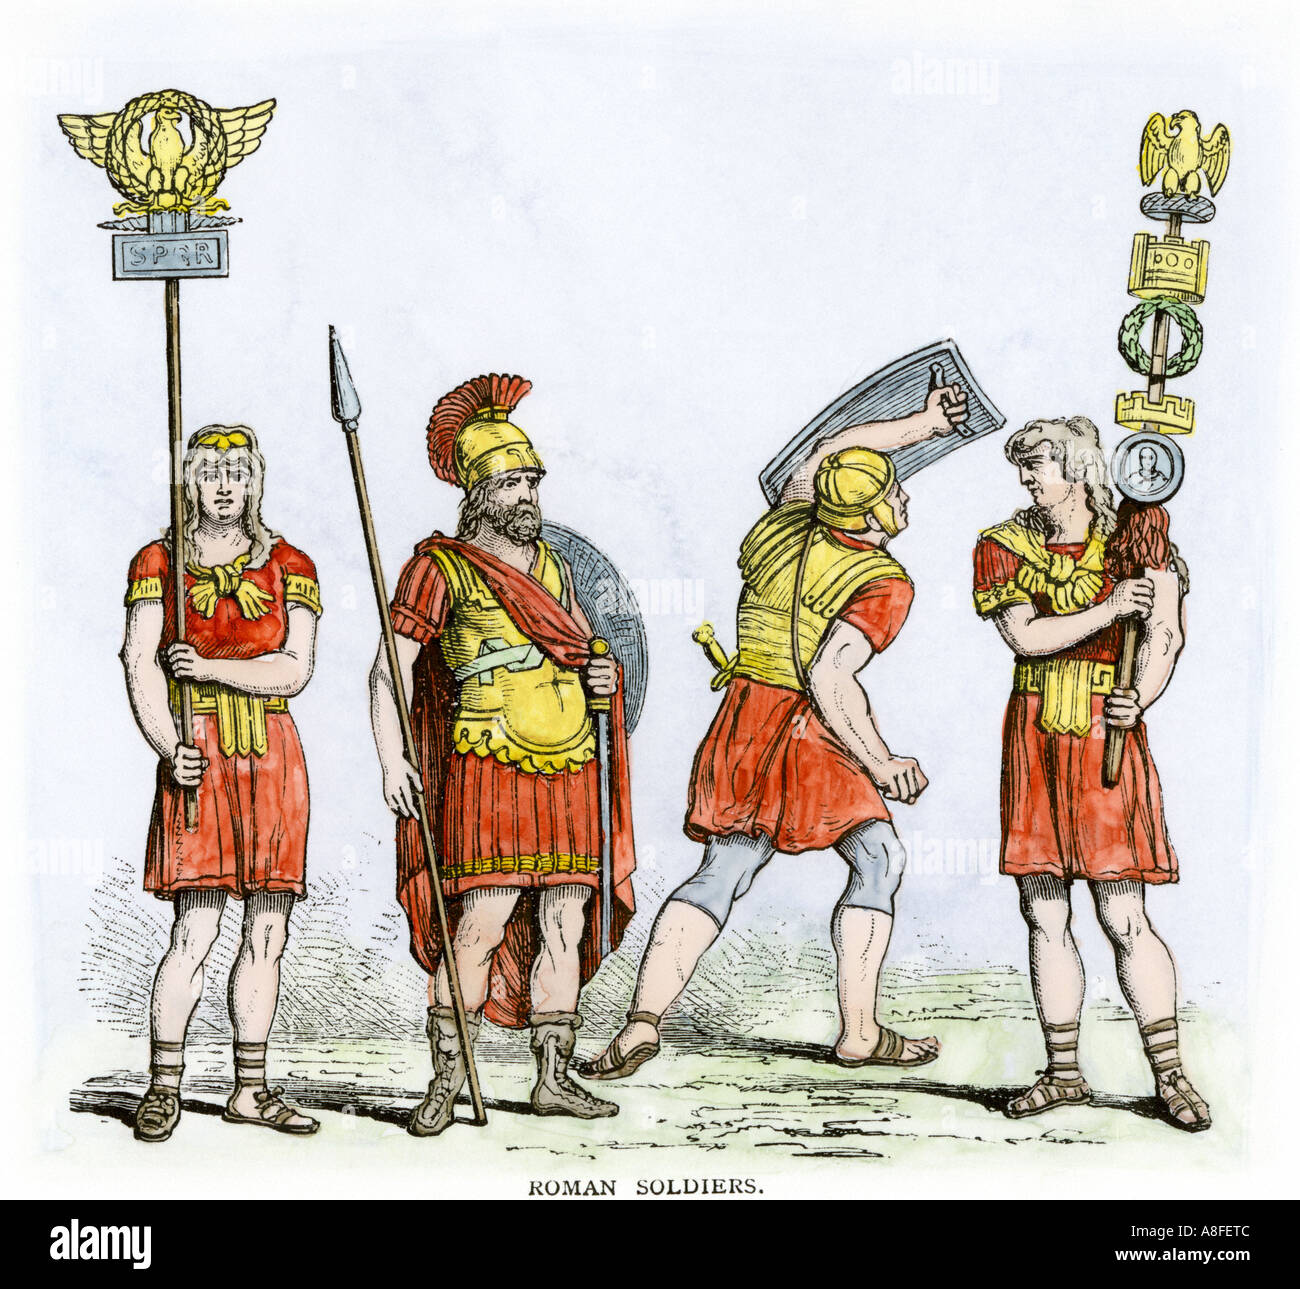 Roman soldiers carrying insignia of the army of ancient Rome. Hand-colored woodcut - Stock Image